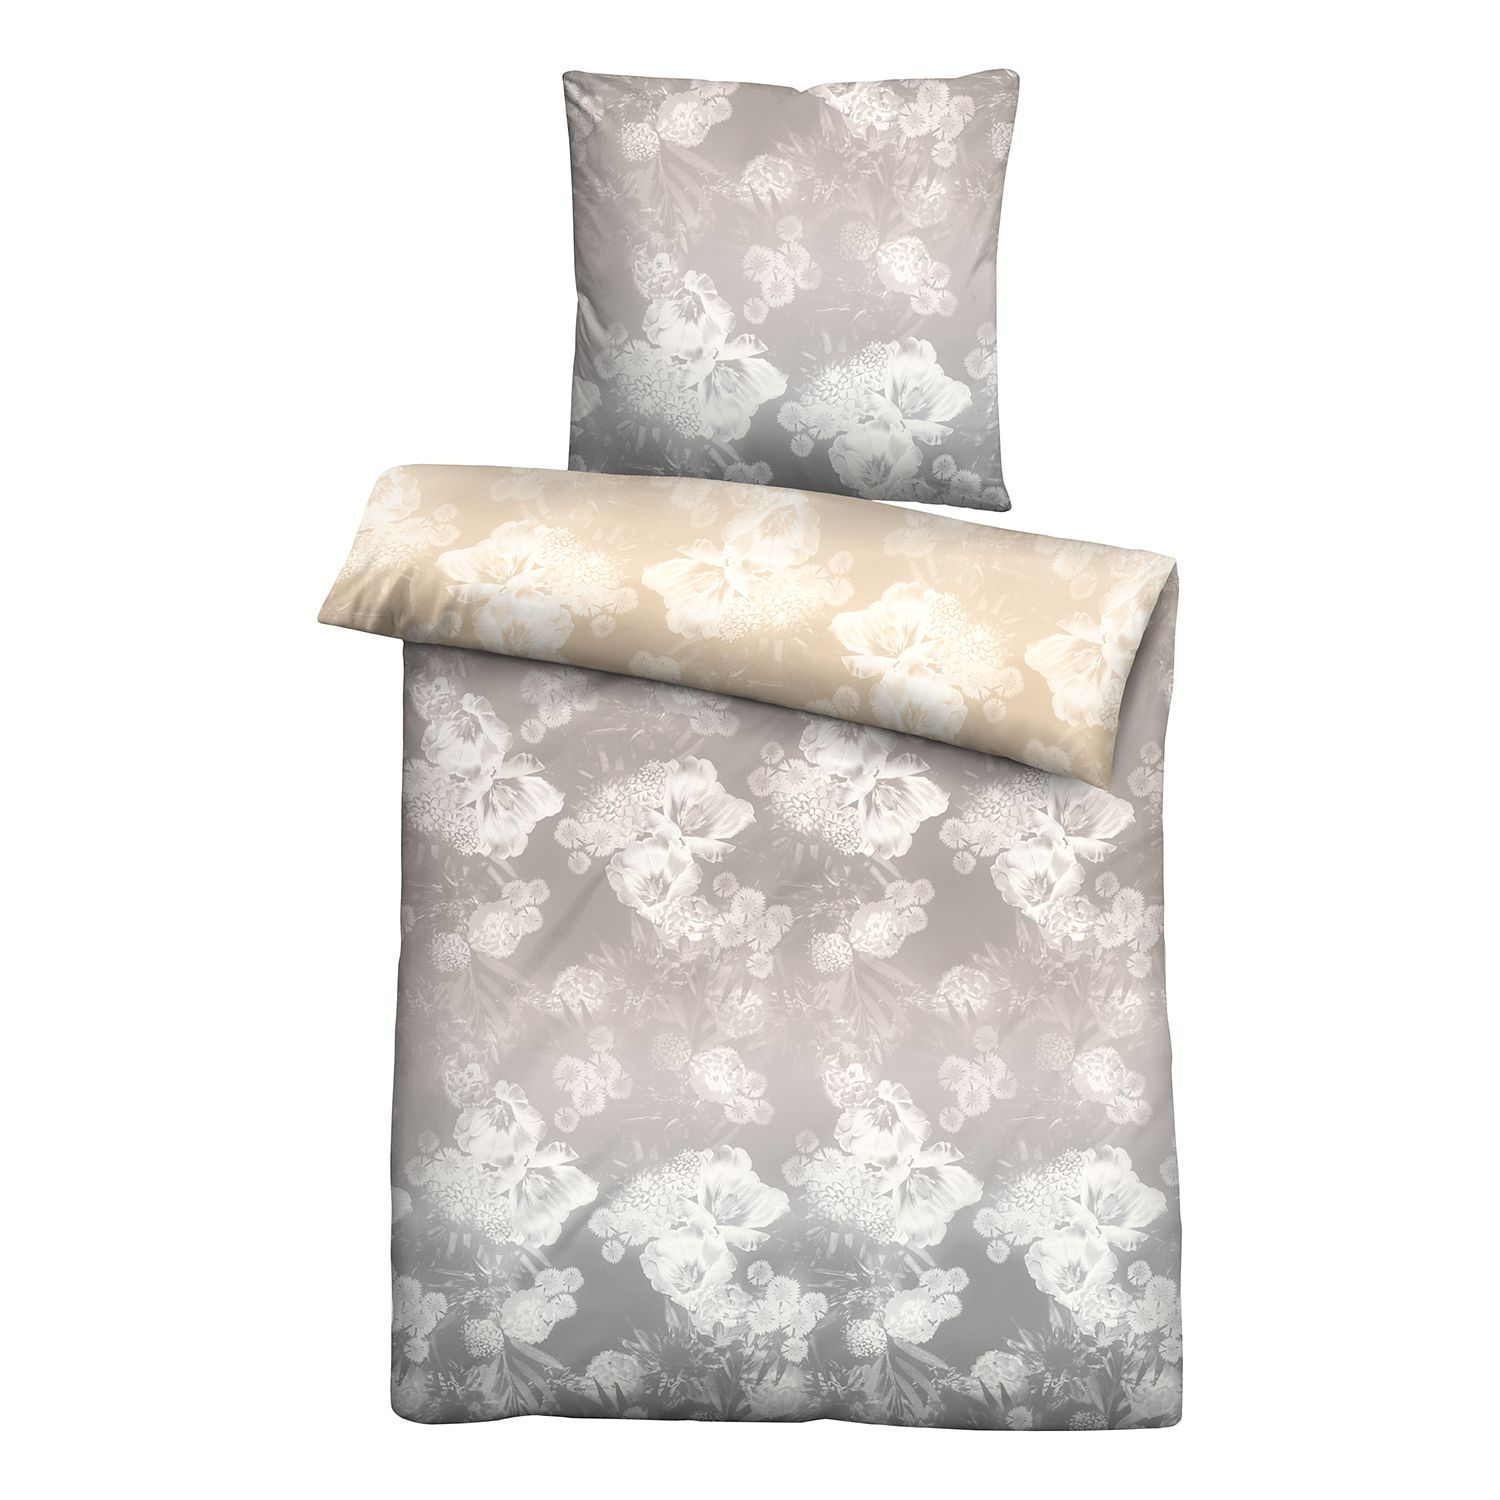 Home24 Bettwaesche Paralia Bettwaesche Und Laken Linen Bedding